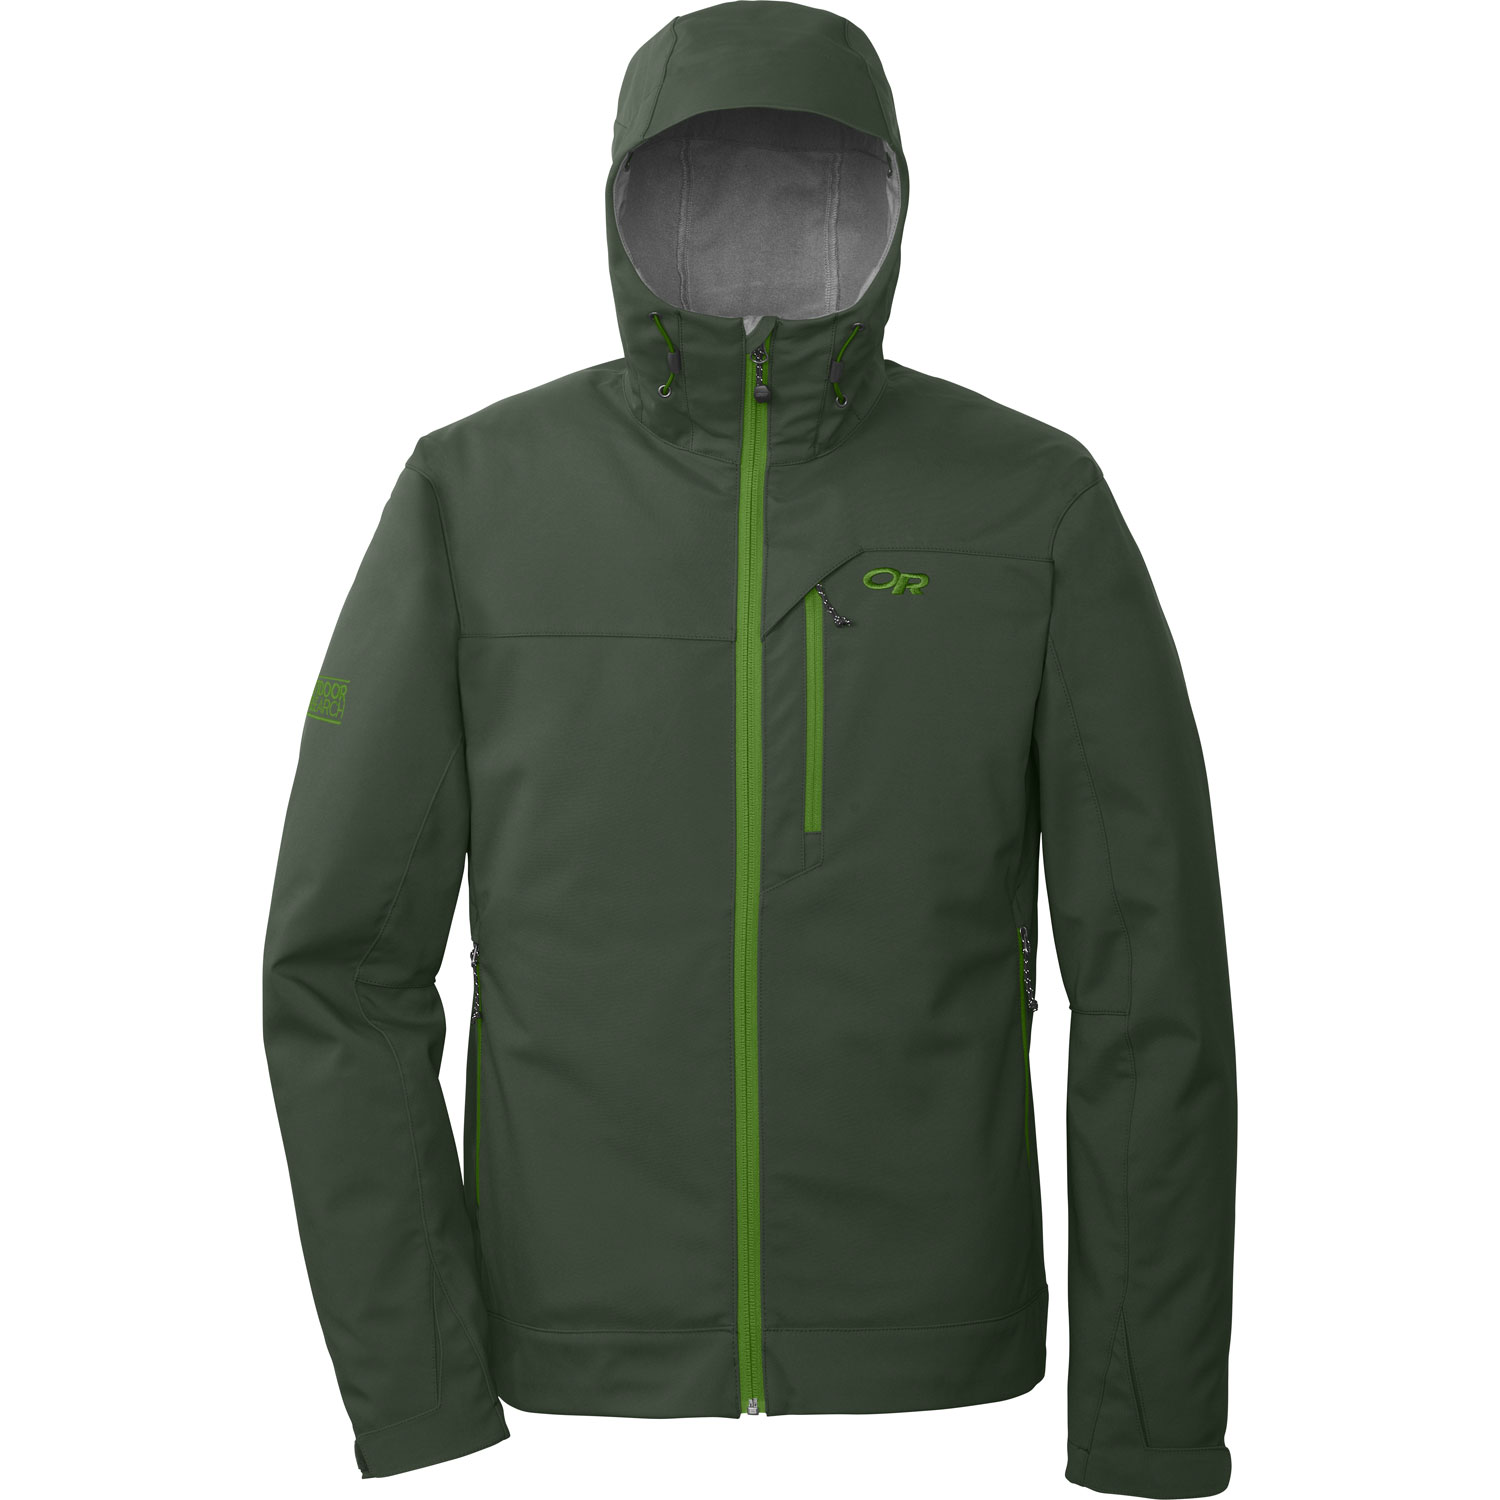 "Ski This water-resistant and breathable stretch soft shell provides unrestricted movement and versatility for warmer backcountry ski days and shoulder-season adventures. The adjustable hood provides additional weather protectionKey Features of the Outdoor Research Transfer Hoody Softshell Jacket: 100% nylon soft shell face / 100% polyester brushed fleece interior Water resistant Breathable Fleece interior Brushed tricot collar Adjustable hood Two zippered hand pockets Chest pocket Hook/loop cuff closures Drawcord hem (L) 22.2 oz. / 630 g Standard Fit Center Back Length: 29"" / 74 cm - $99.95"